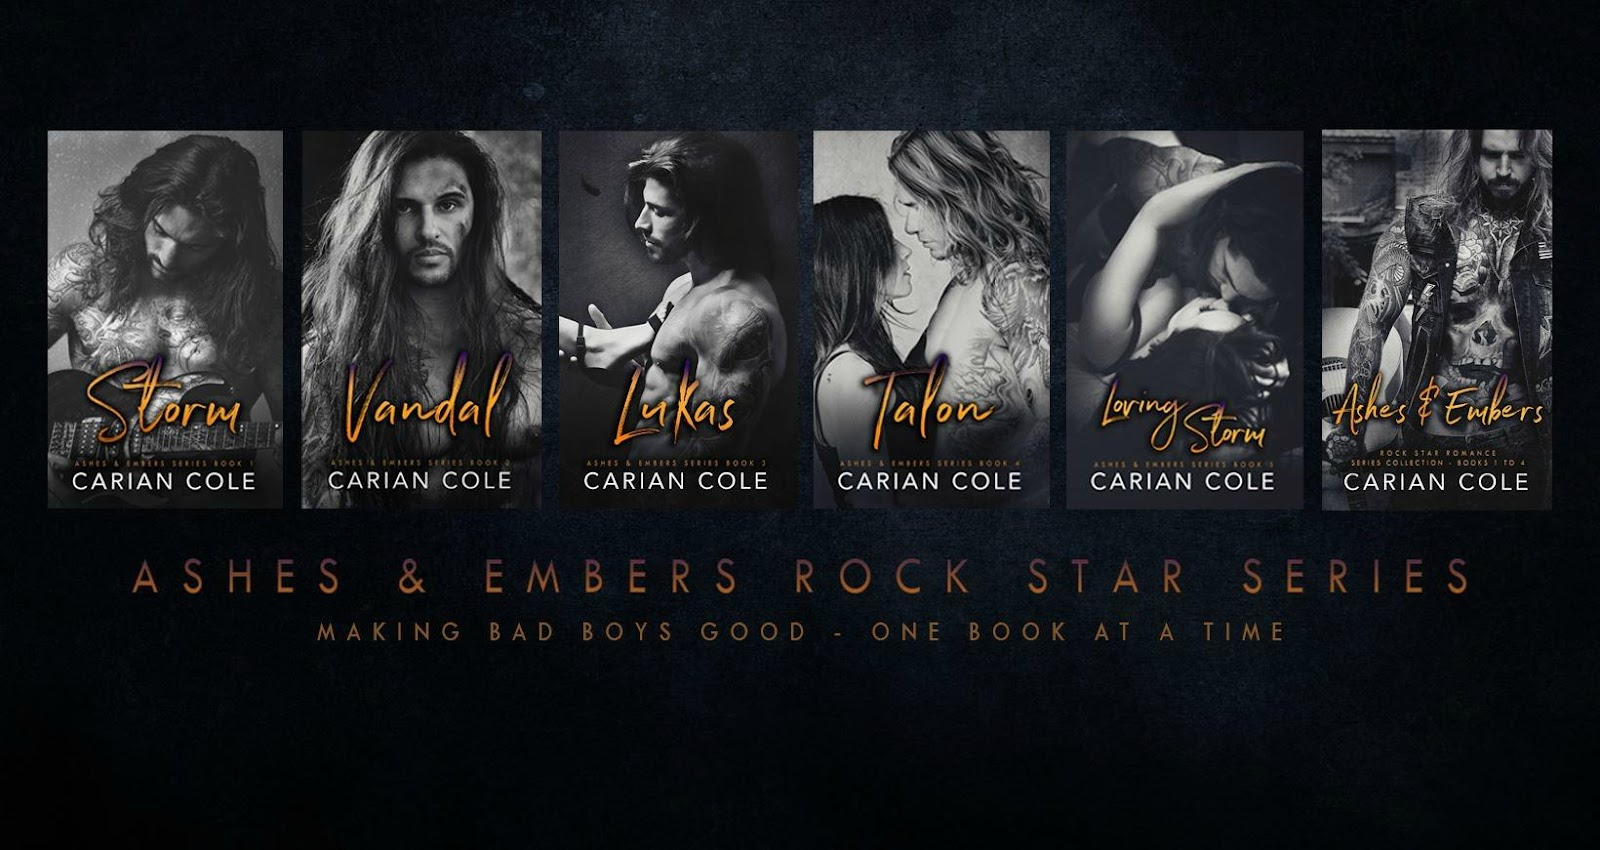 https://www.forewordpr.com/wp-content/uploads/2019/04/Ashes-Embers-Rock-Star-Series-graphic.jpg